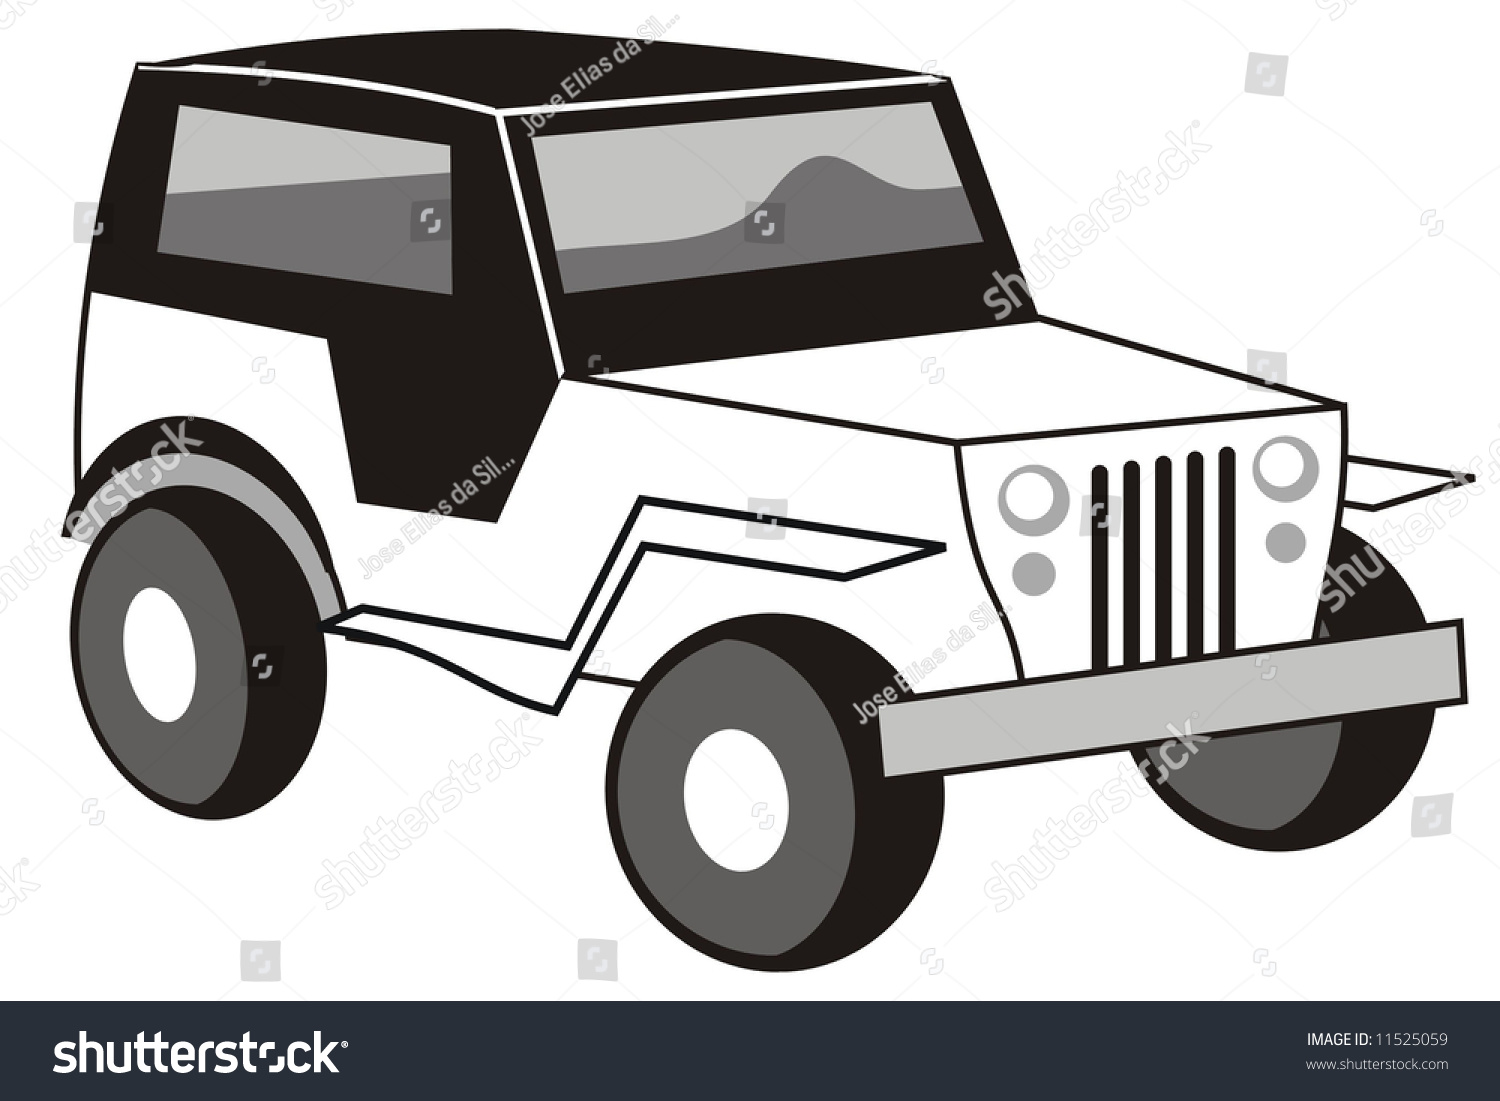 Jeep Clipart Black And White Www.galleryhip.com The.